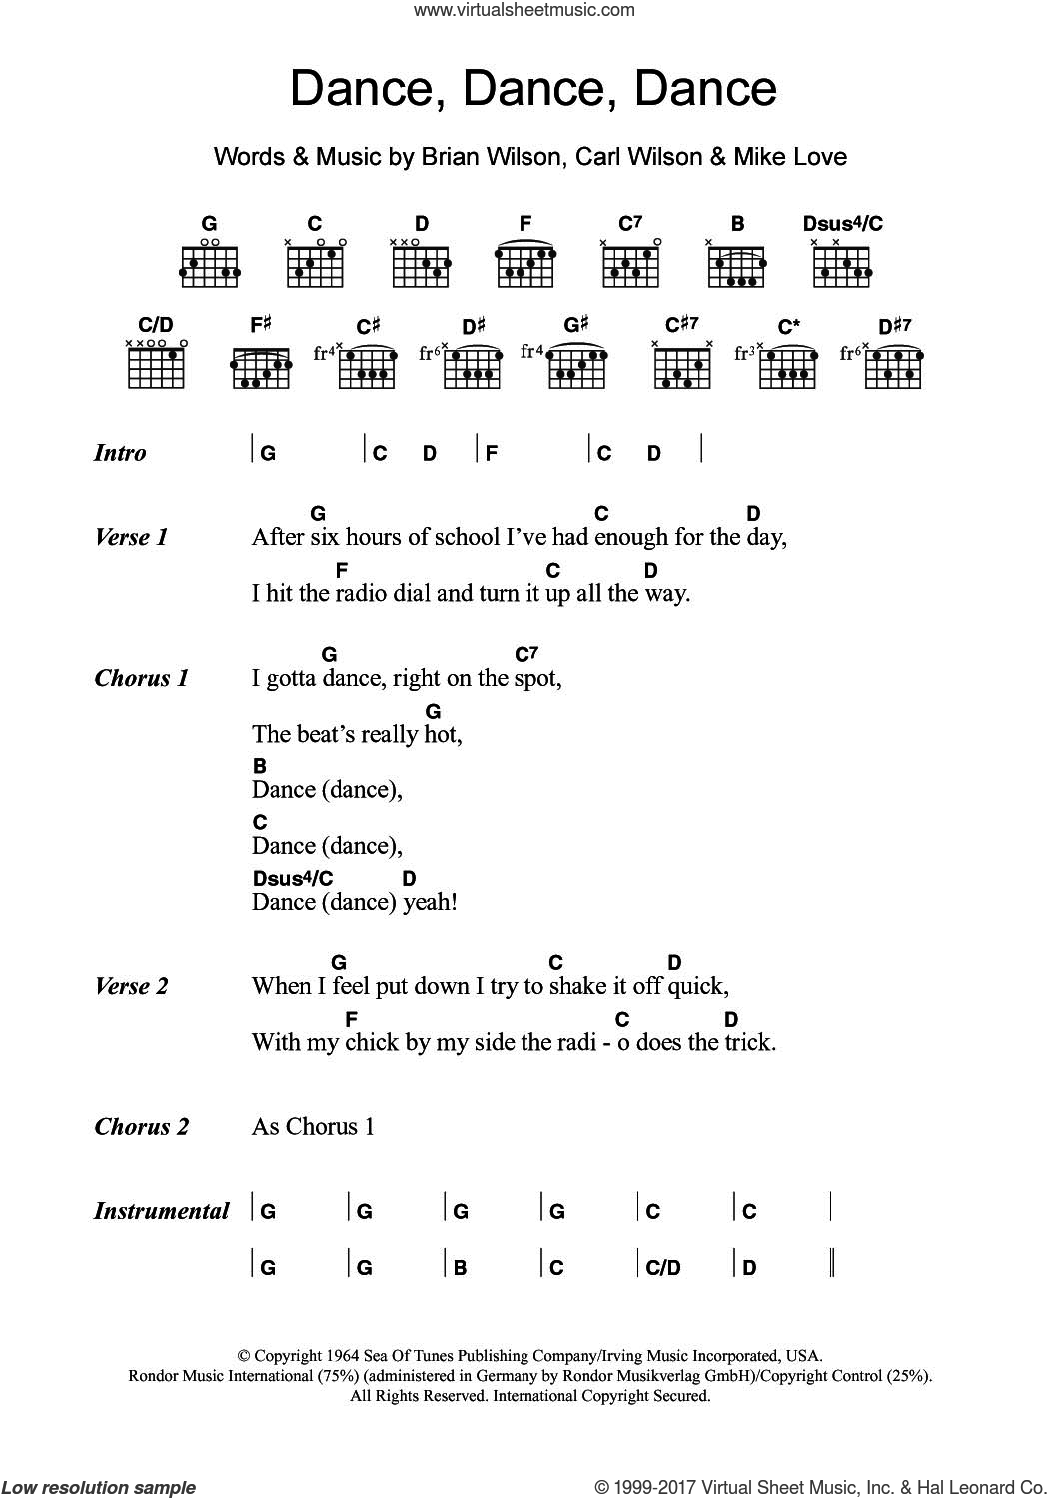 Boys Dance Dance Dance Sheet Music For Guitar Chords Pdf